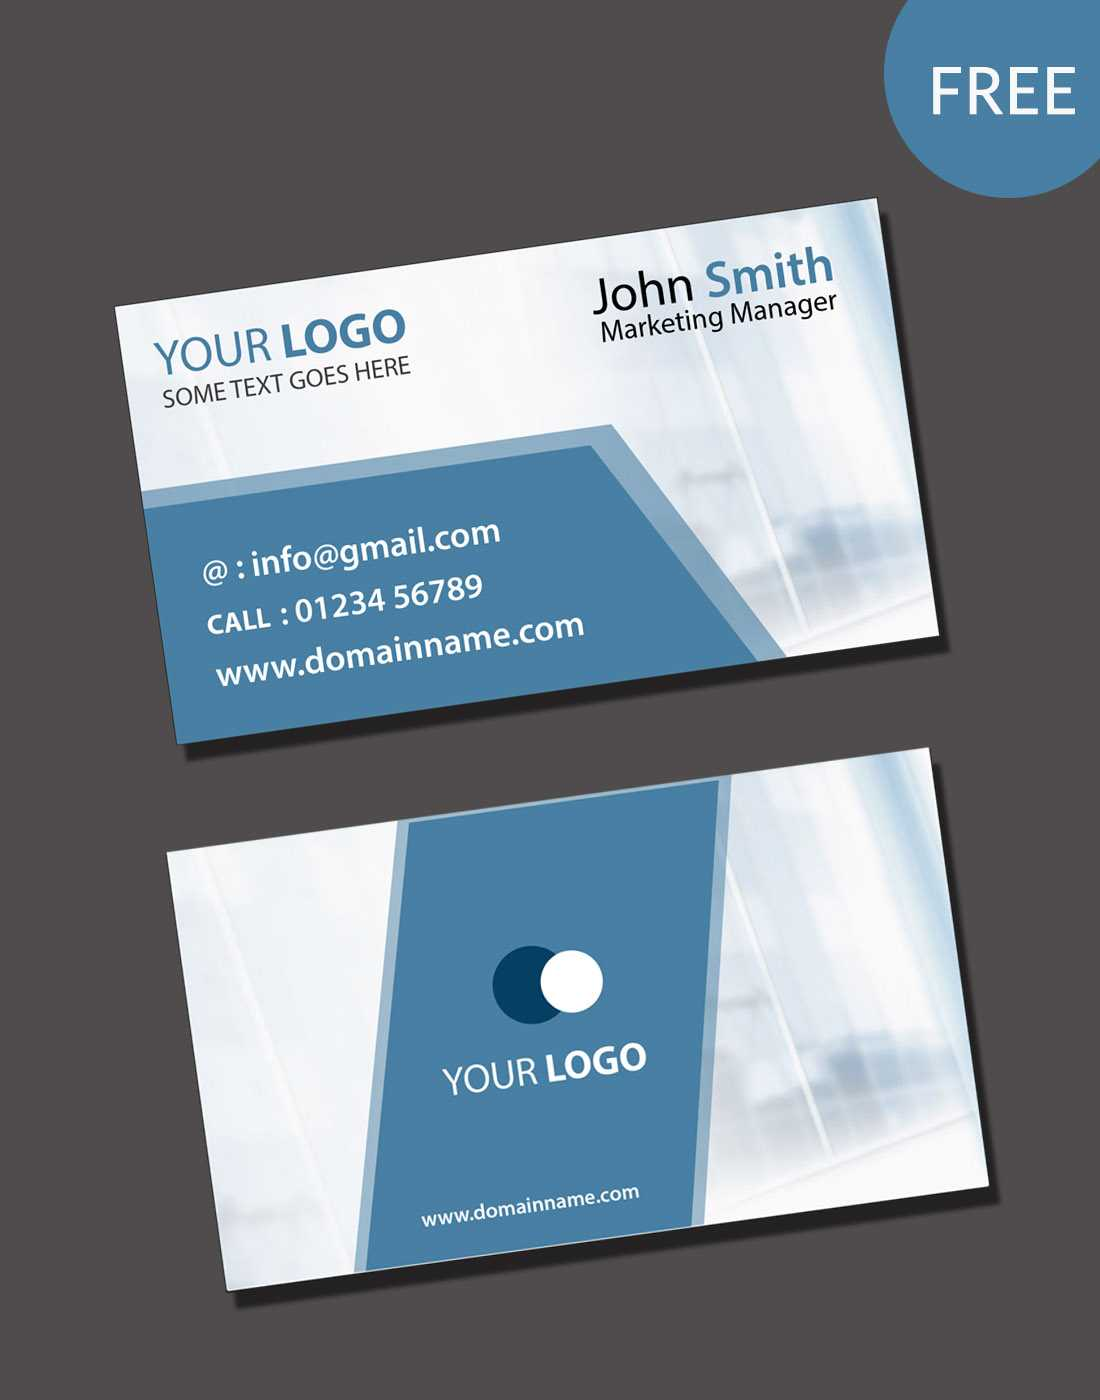 020 Free Blank Business Card Templates Psd Template Download With Regard To Blank Business Card Template Download